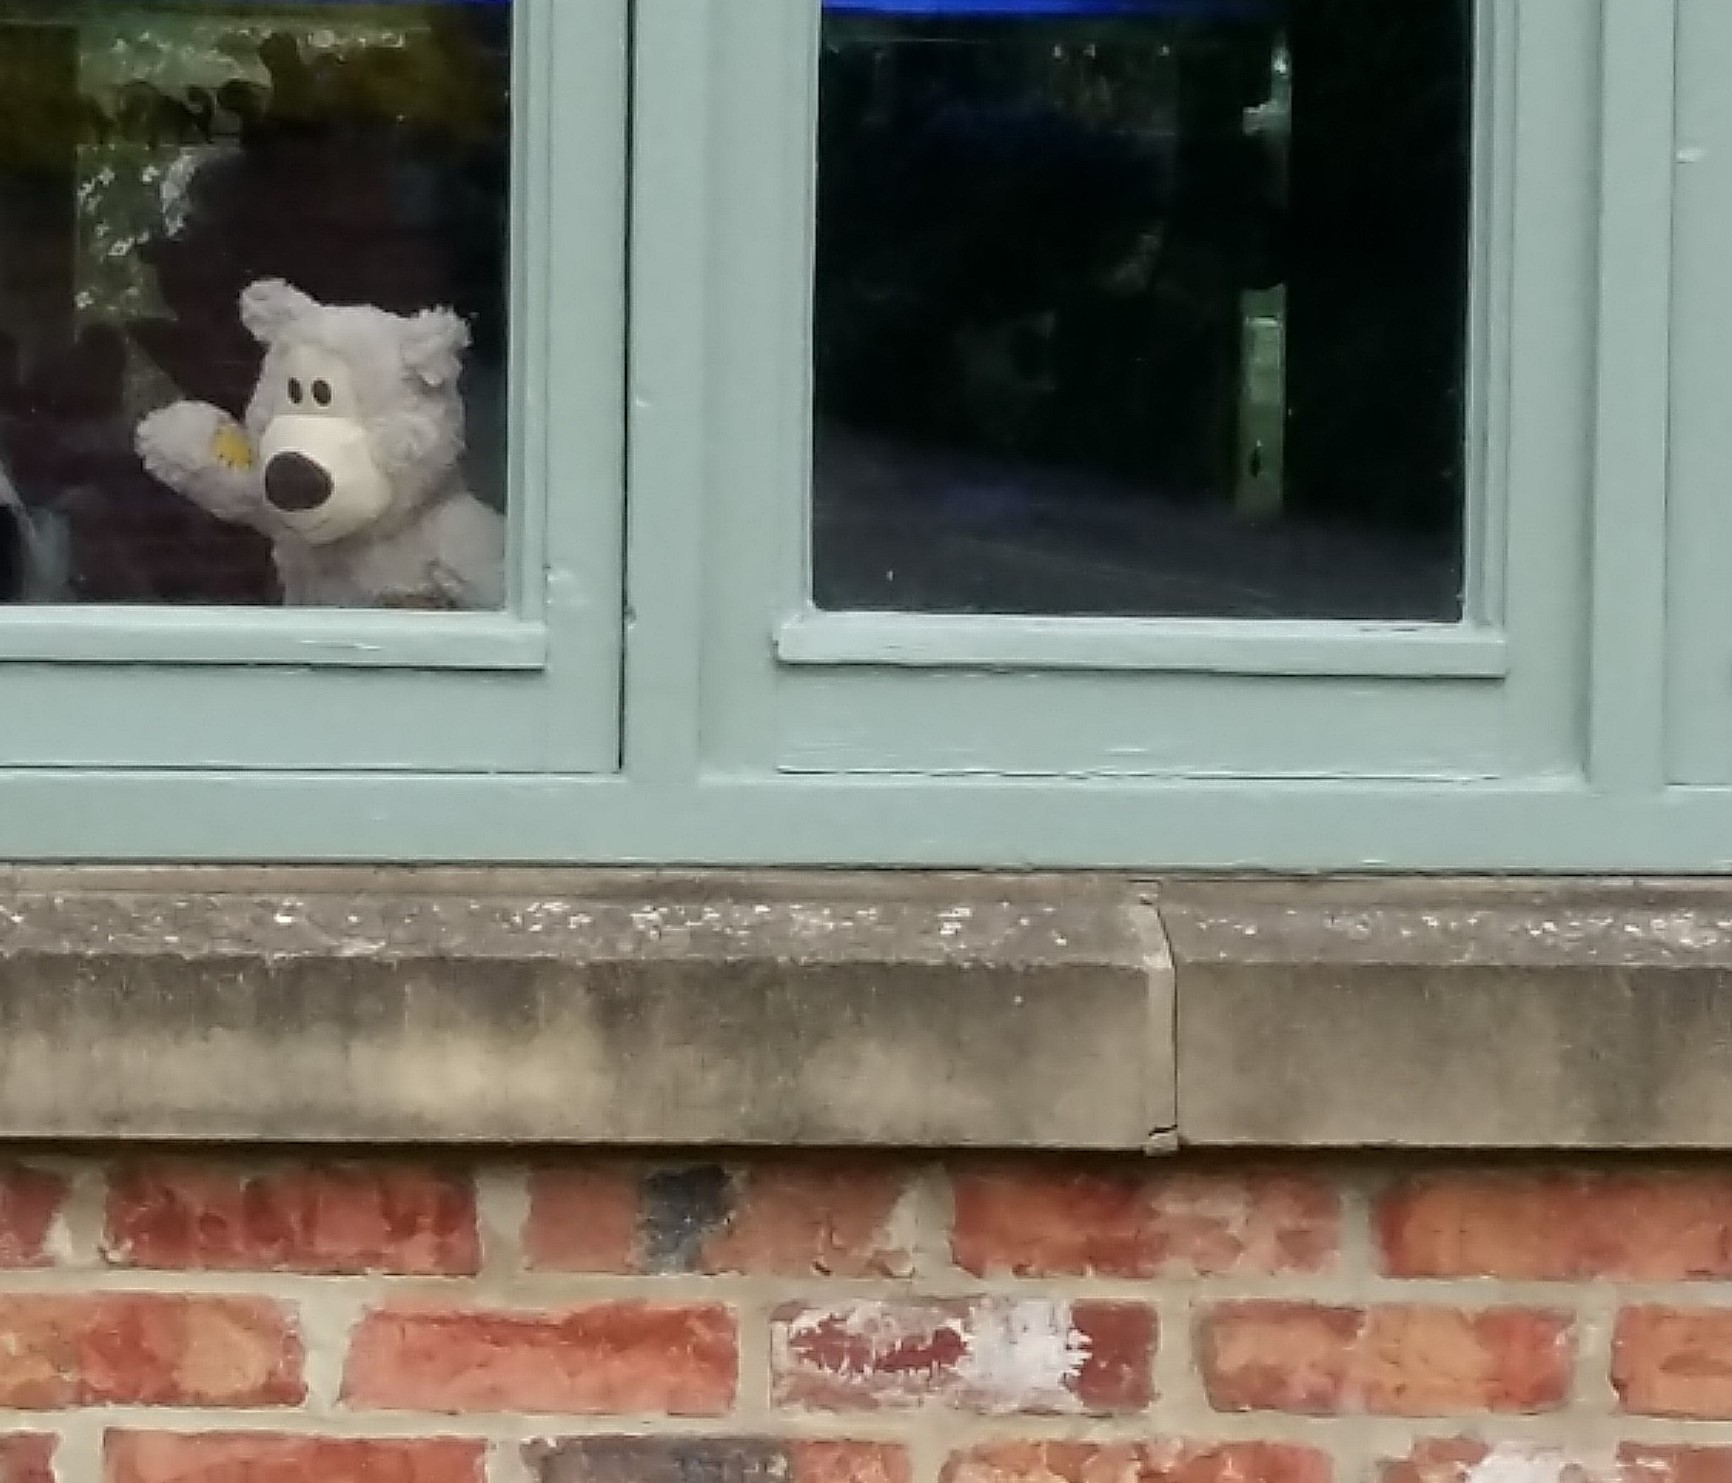 Bear in window cropped